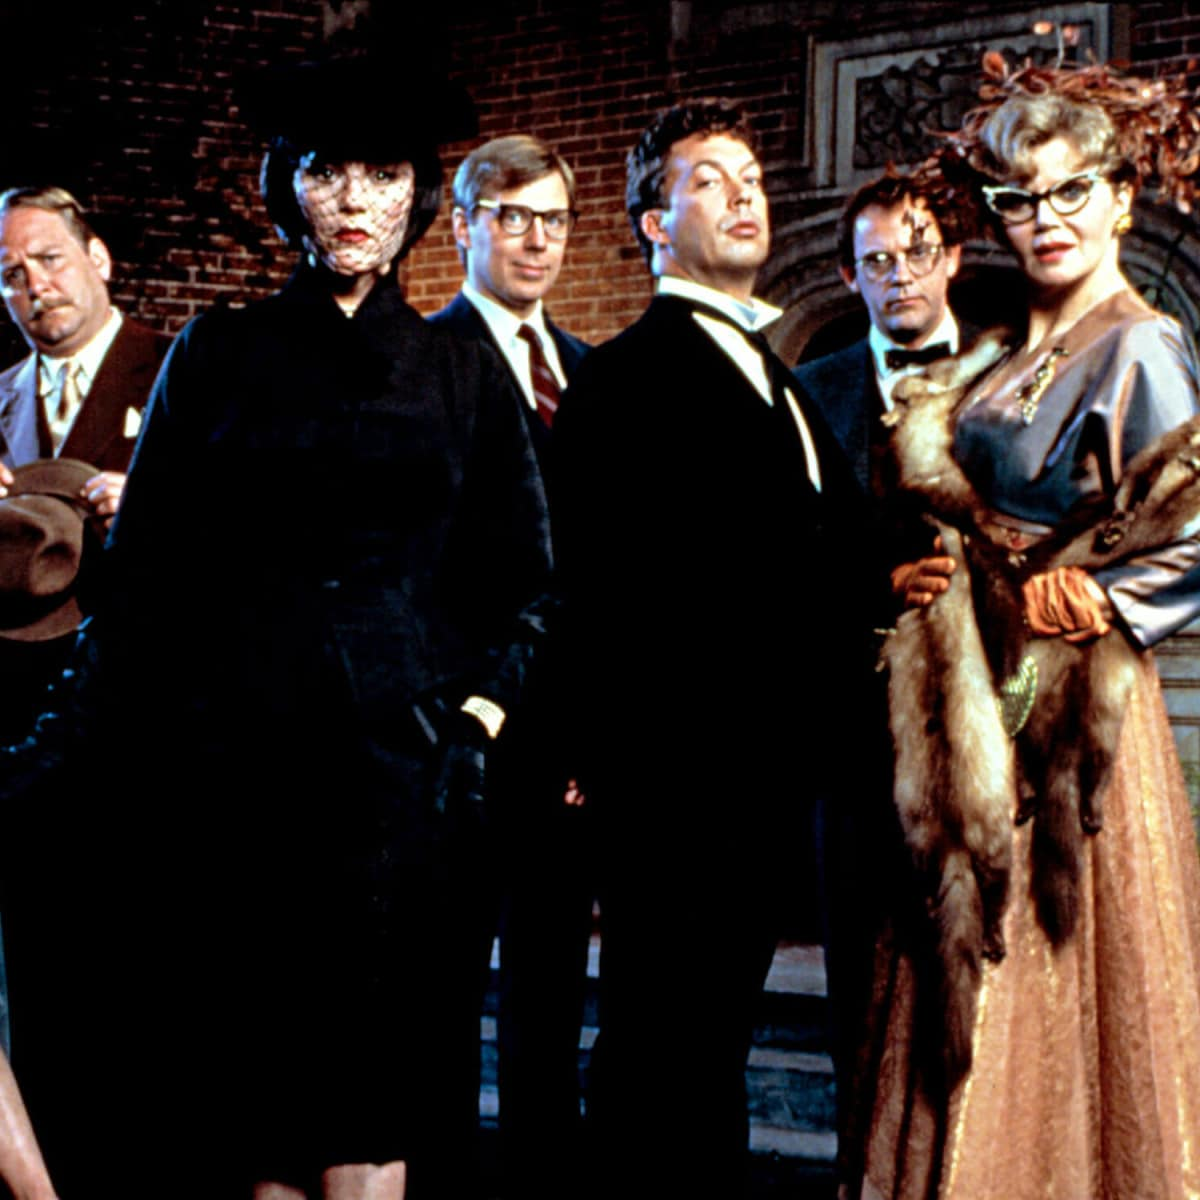 Cast from the film Clue